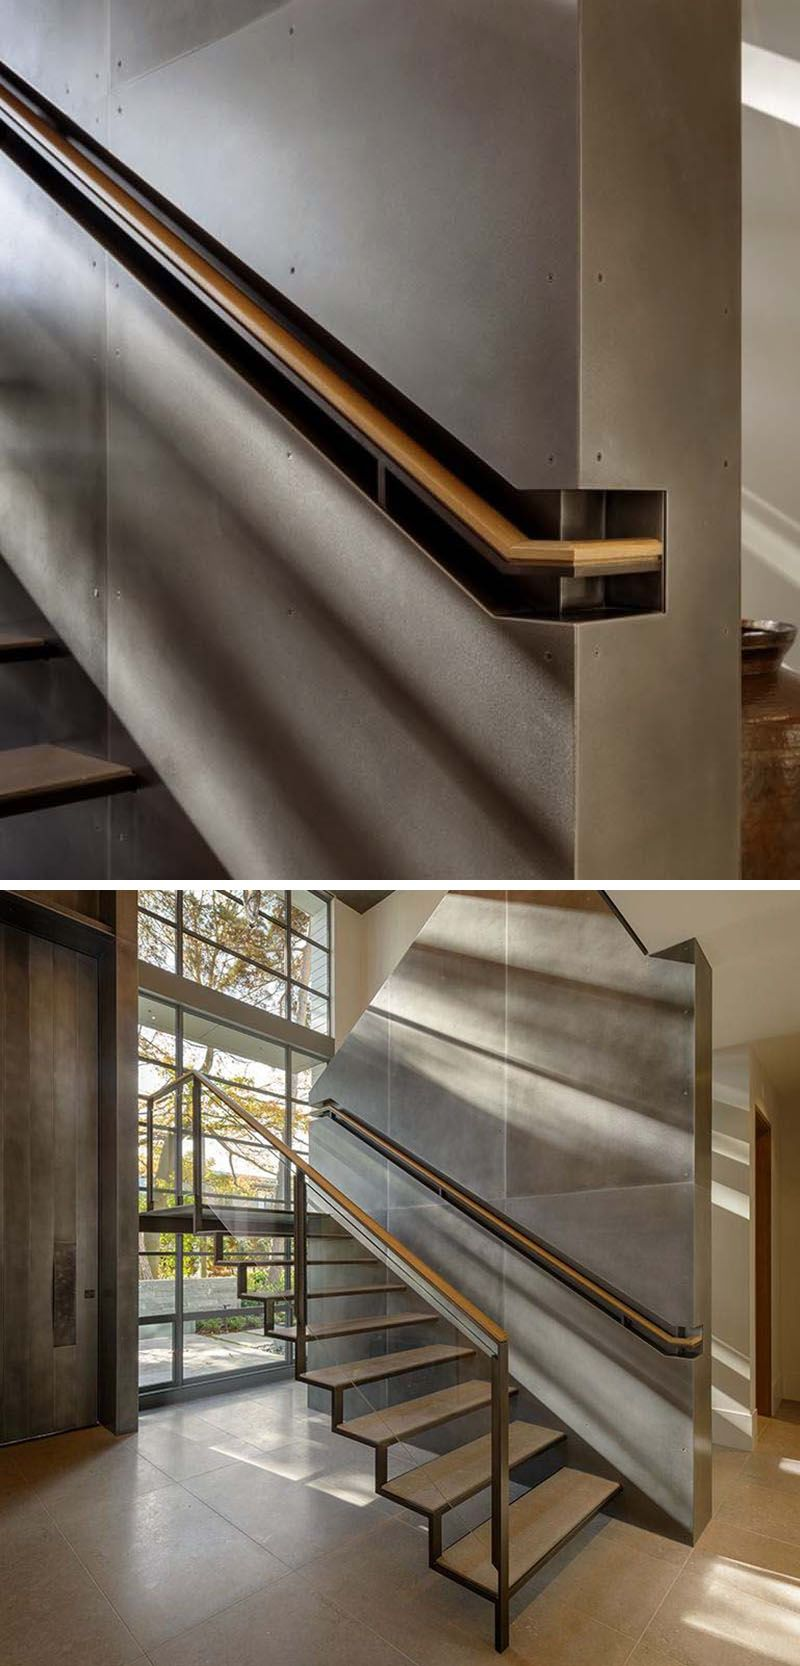 Stair Design Idea   9 Examples Of Built In Handrails | This Wood And Steel  Handrail Is Built Into A Section Of The Wall For A More Industrial Look.